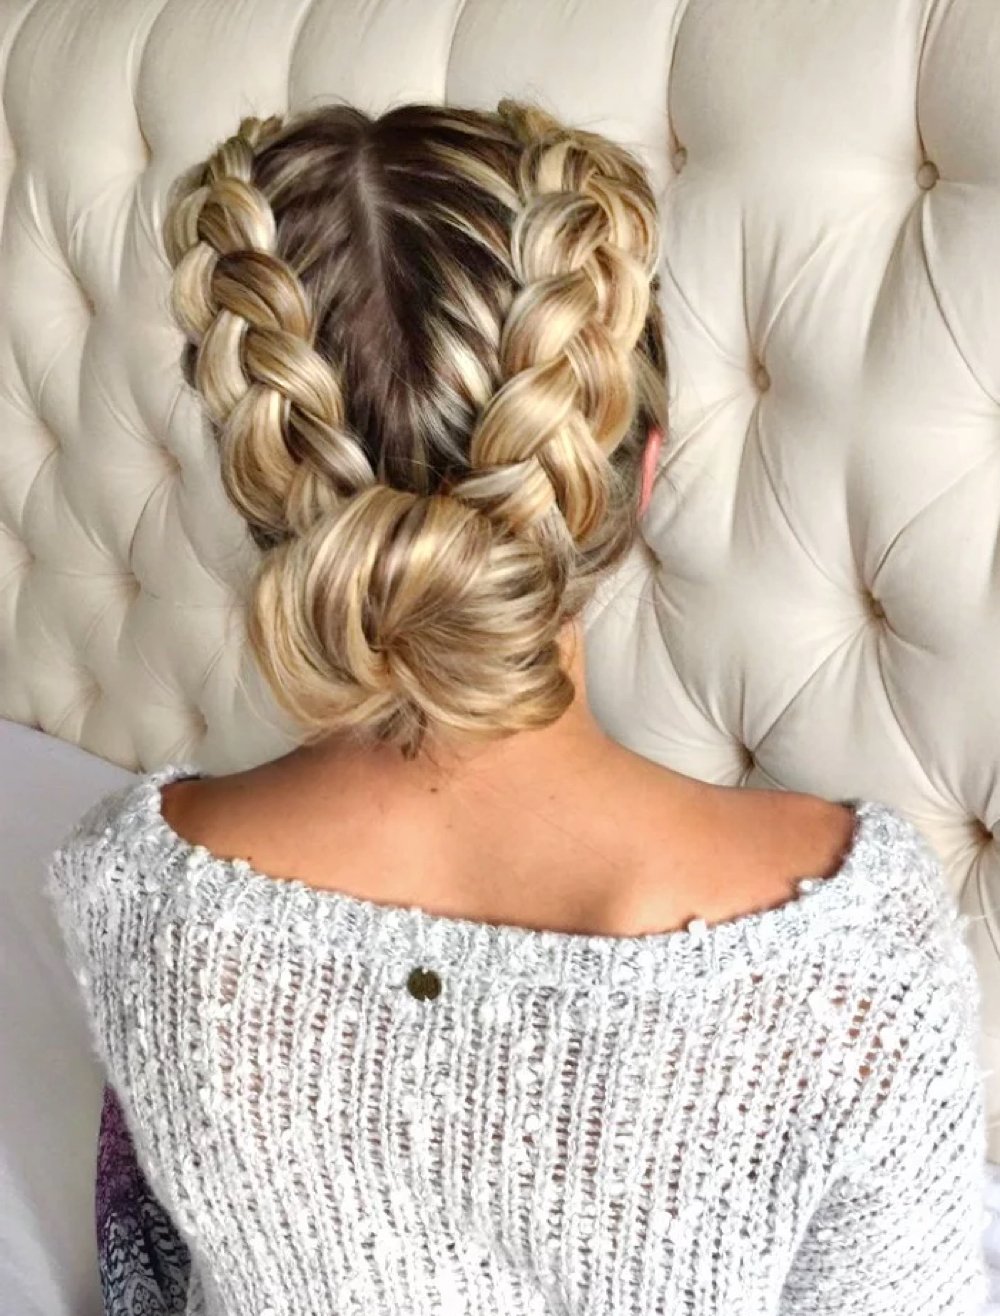 29 Gorgeous Braided Updo Ideas For 2019 Regarding Most Current Pulled Back Beaded Bun Braided Hairstyles (View 19 of 20)